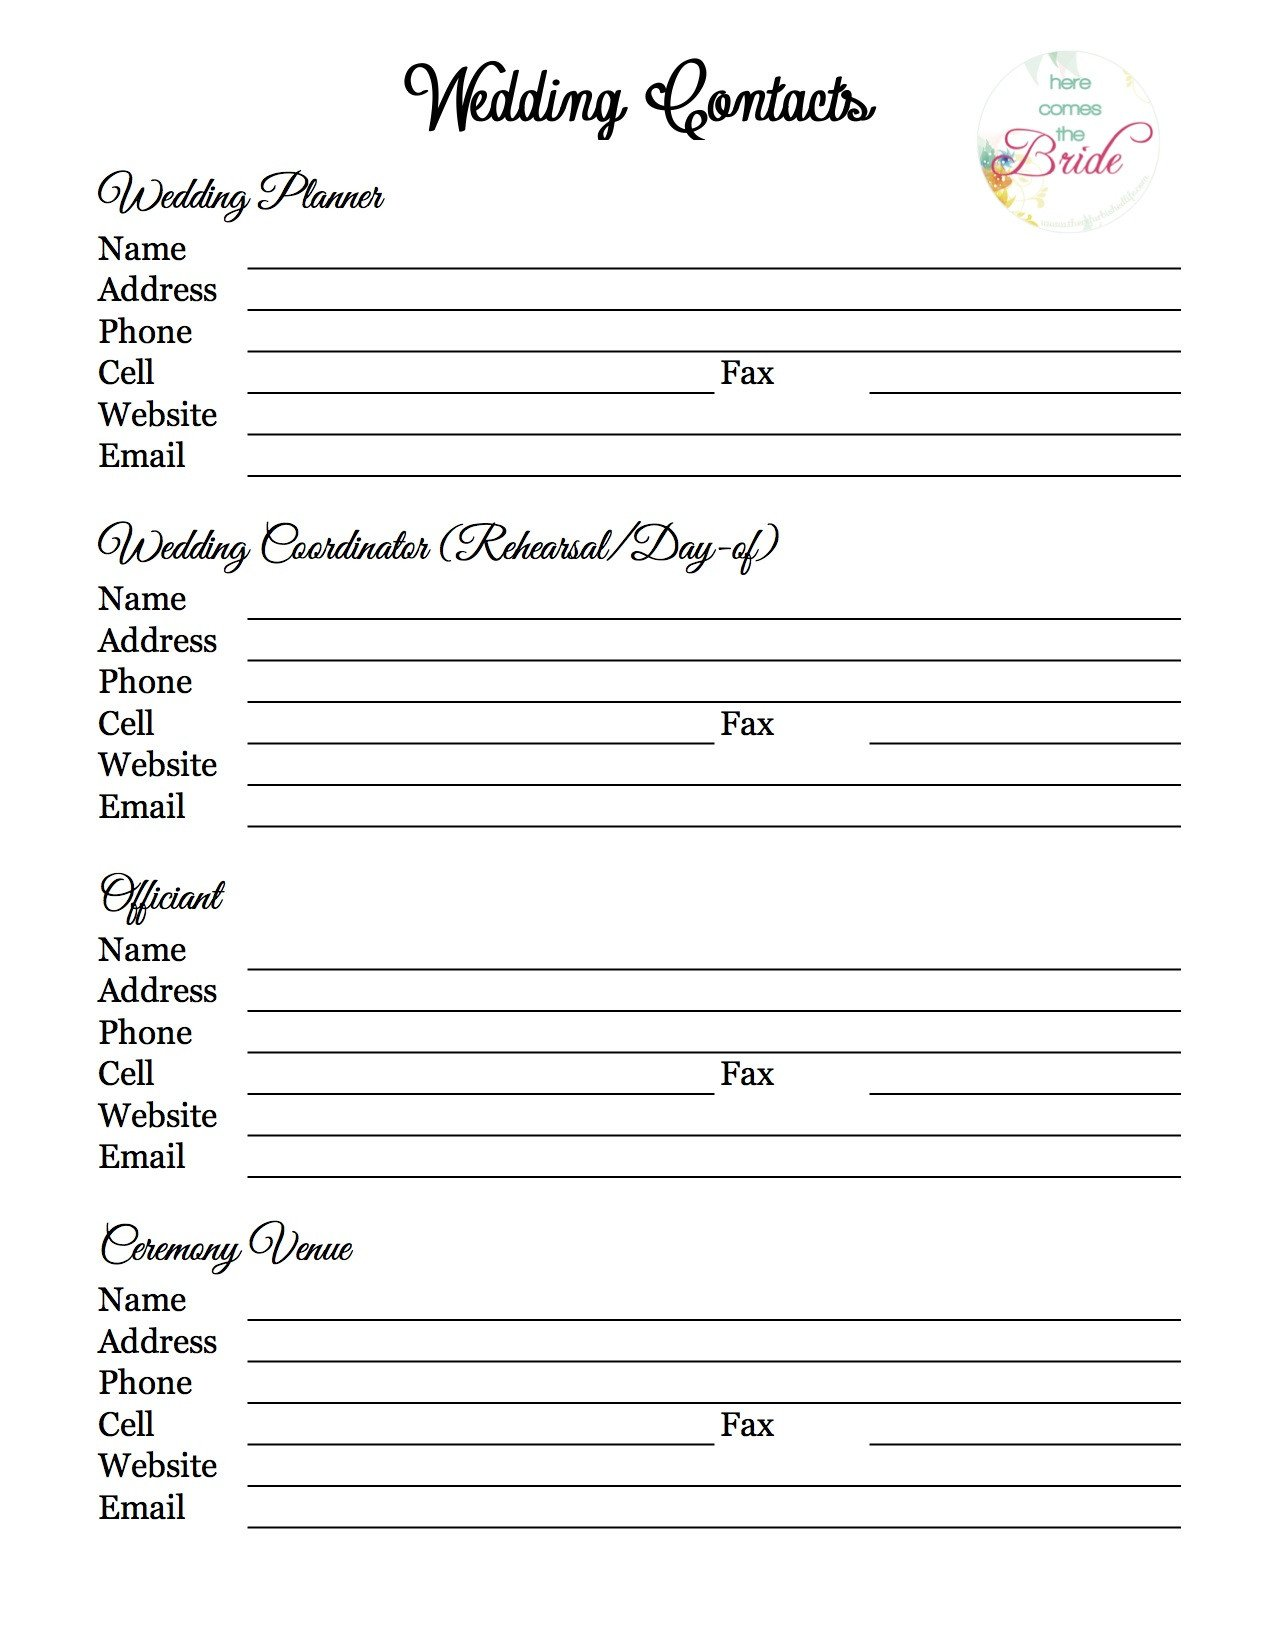 Wedding Party List Template Wedding Planner with Free Printables – Refurbished